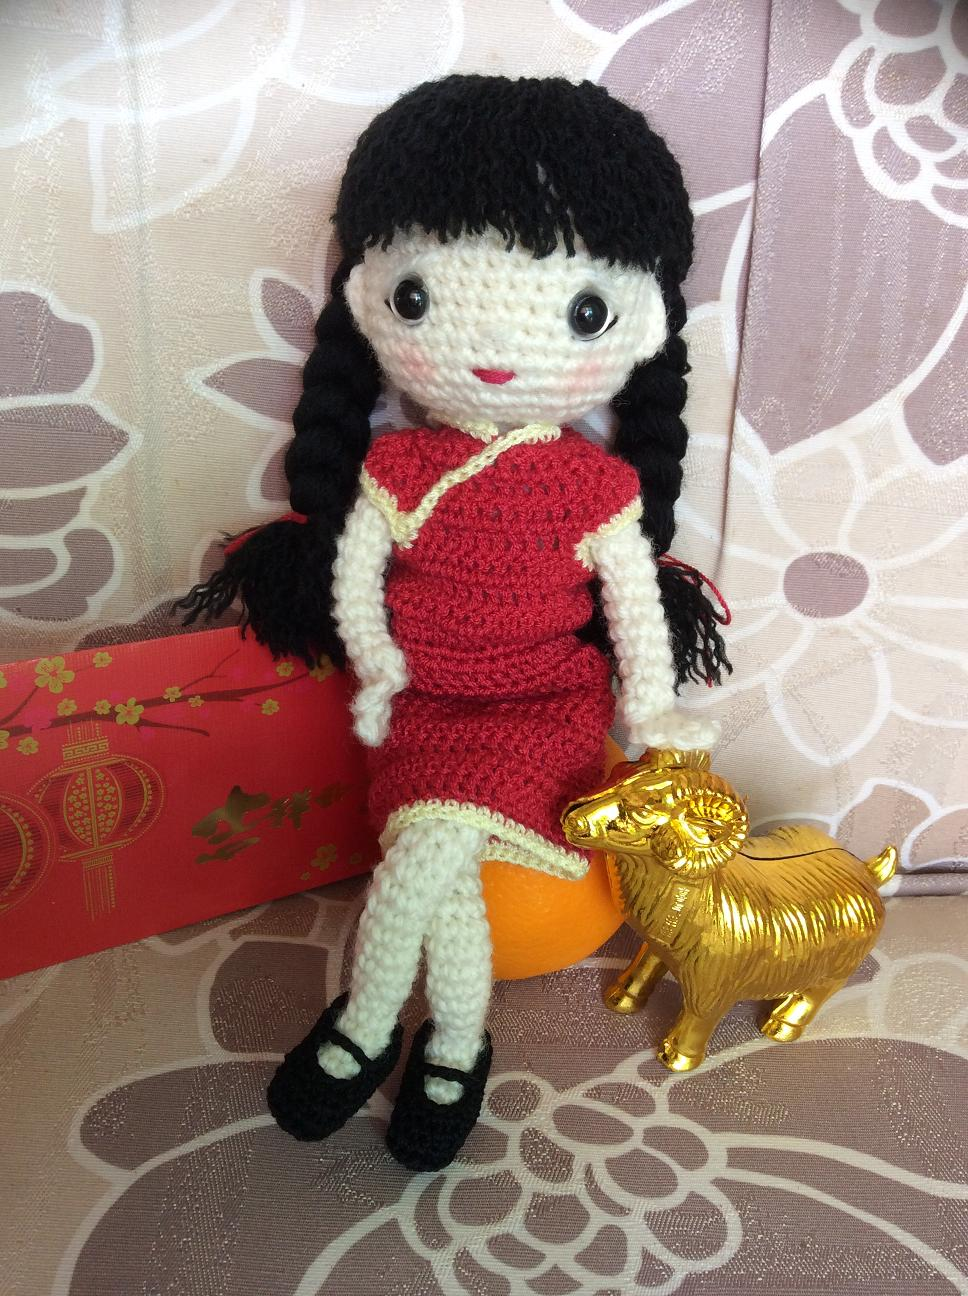 The Moody Homemaker: Crochet / Amigurumi Chinese New Year Doll